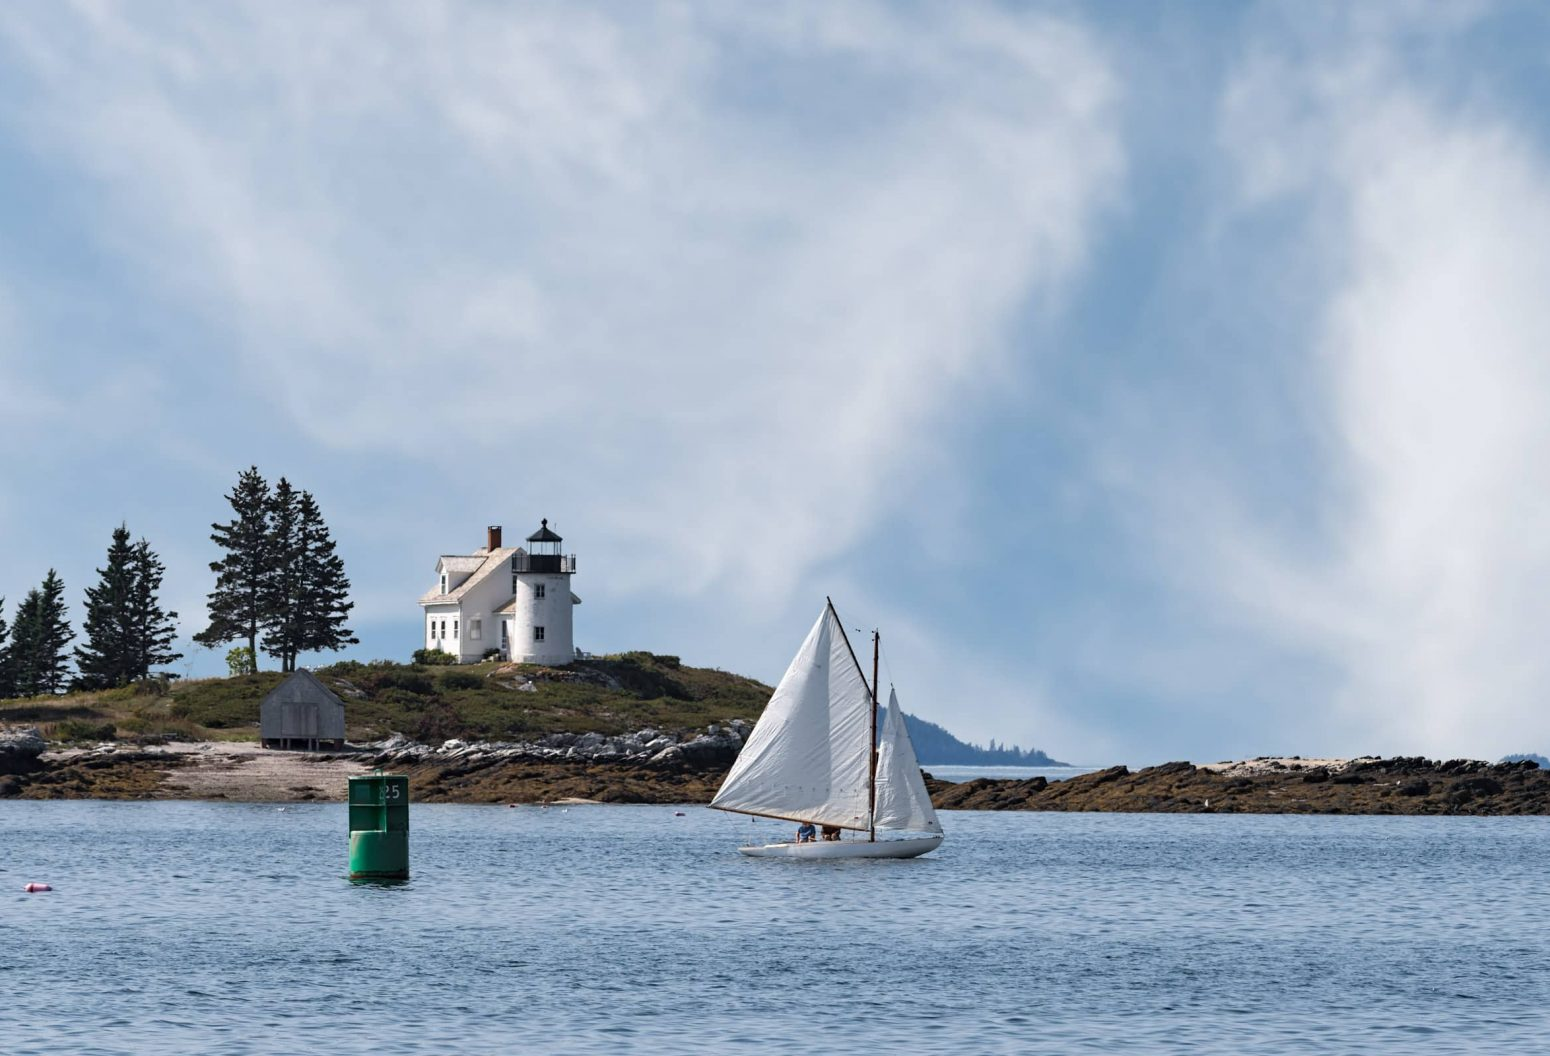 A light house on Pumpkin Island with a small sailboat in the foreground